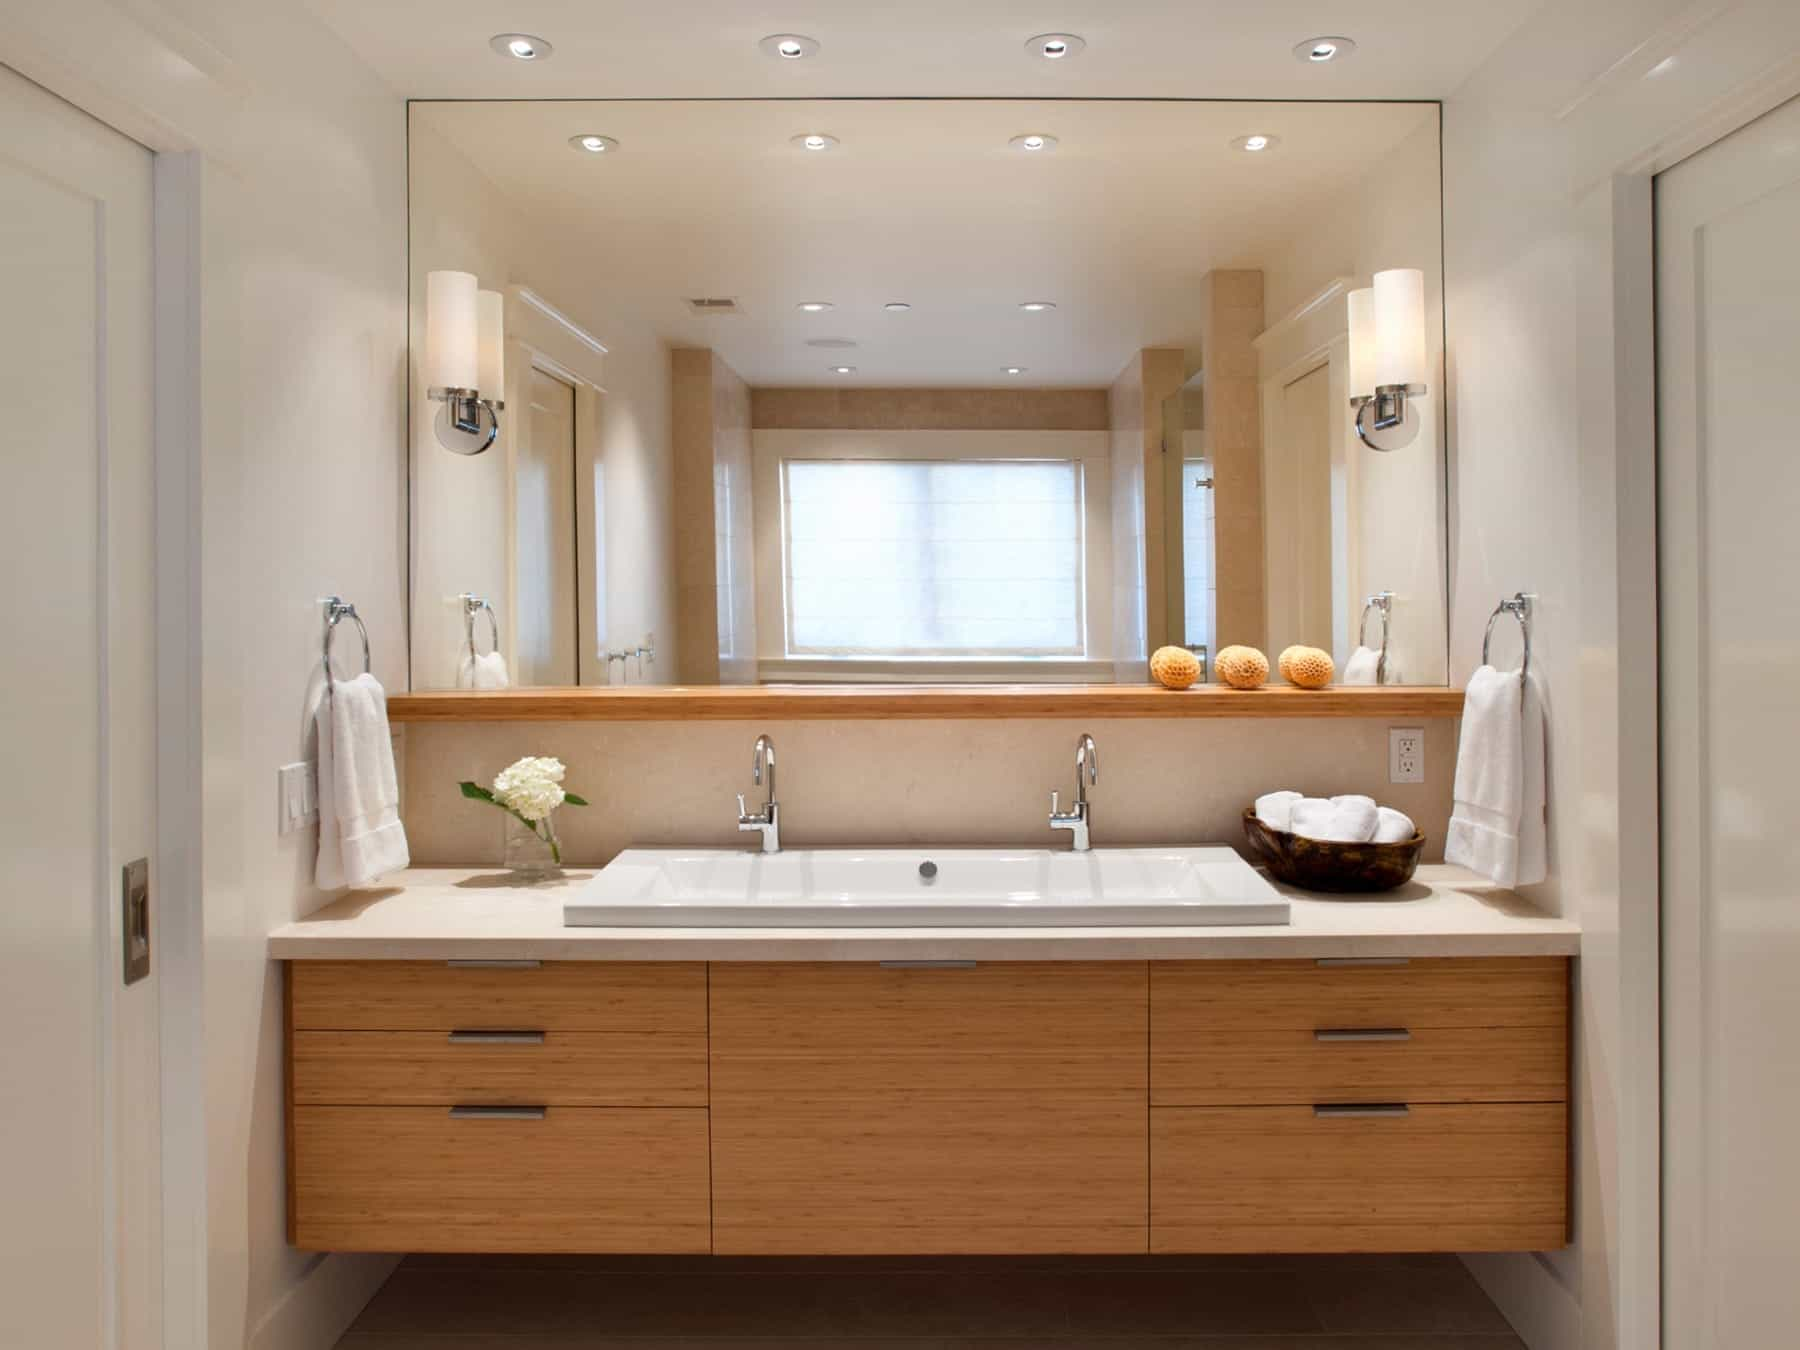 Contemporary Large Bathroom Mirror With LED Lighting (Image 9 of 20)